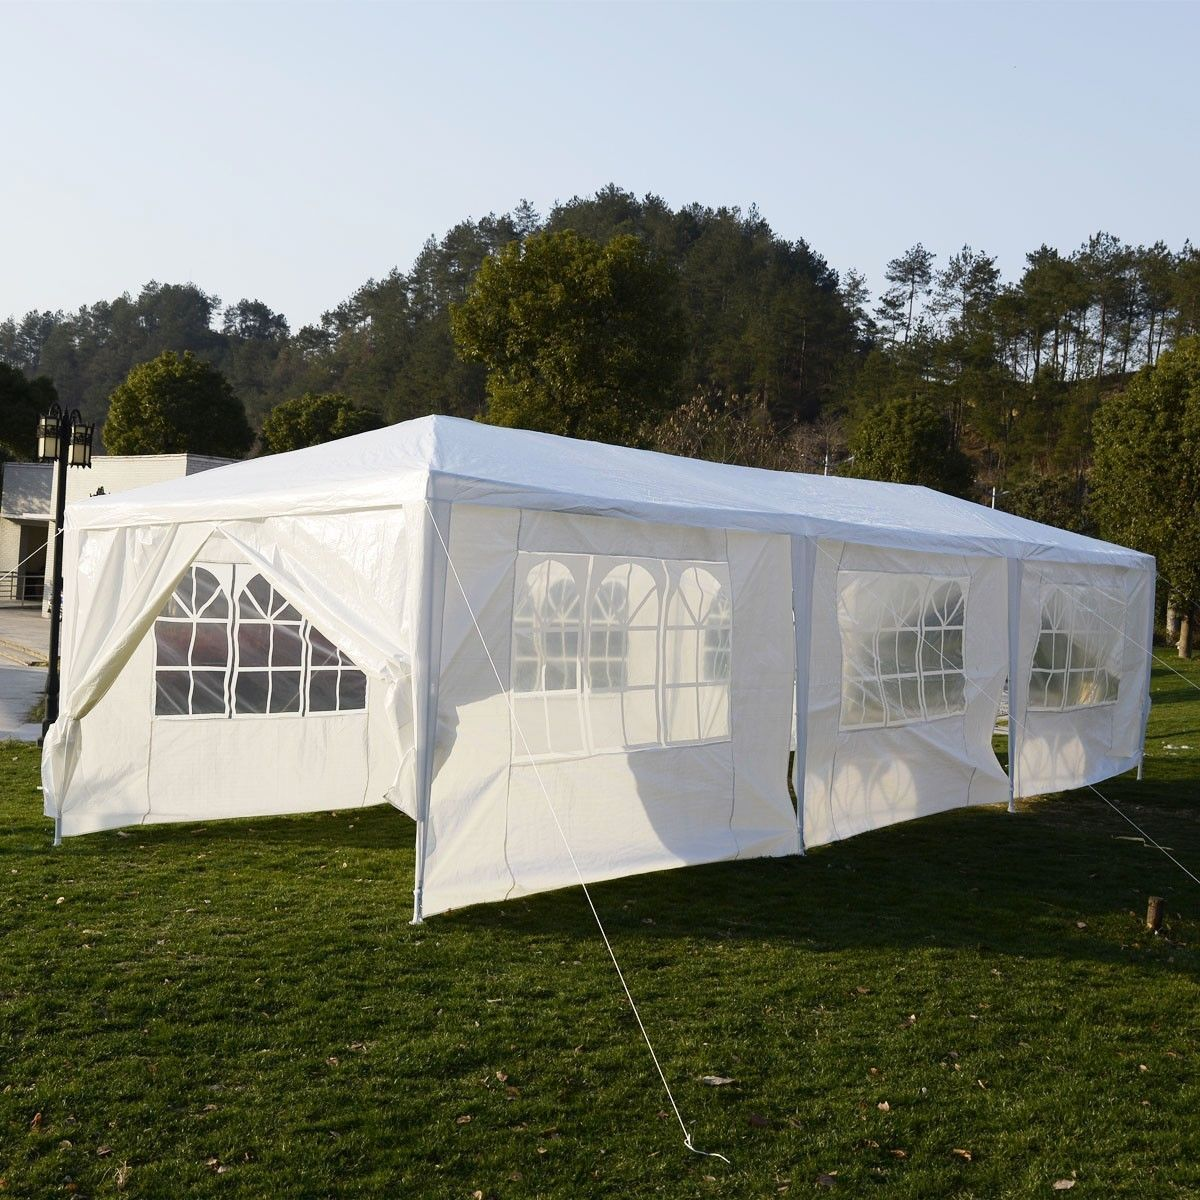 New Outdoor Canopy Party Wedding Tent Heavy duty Gazebo Pavilion Cater Events-white-10 & New Outdoor Canopy Party Wedding Tent Heavy duty Gazebo Pavilion ...